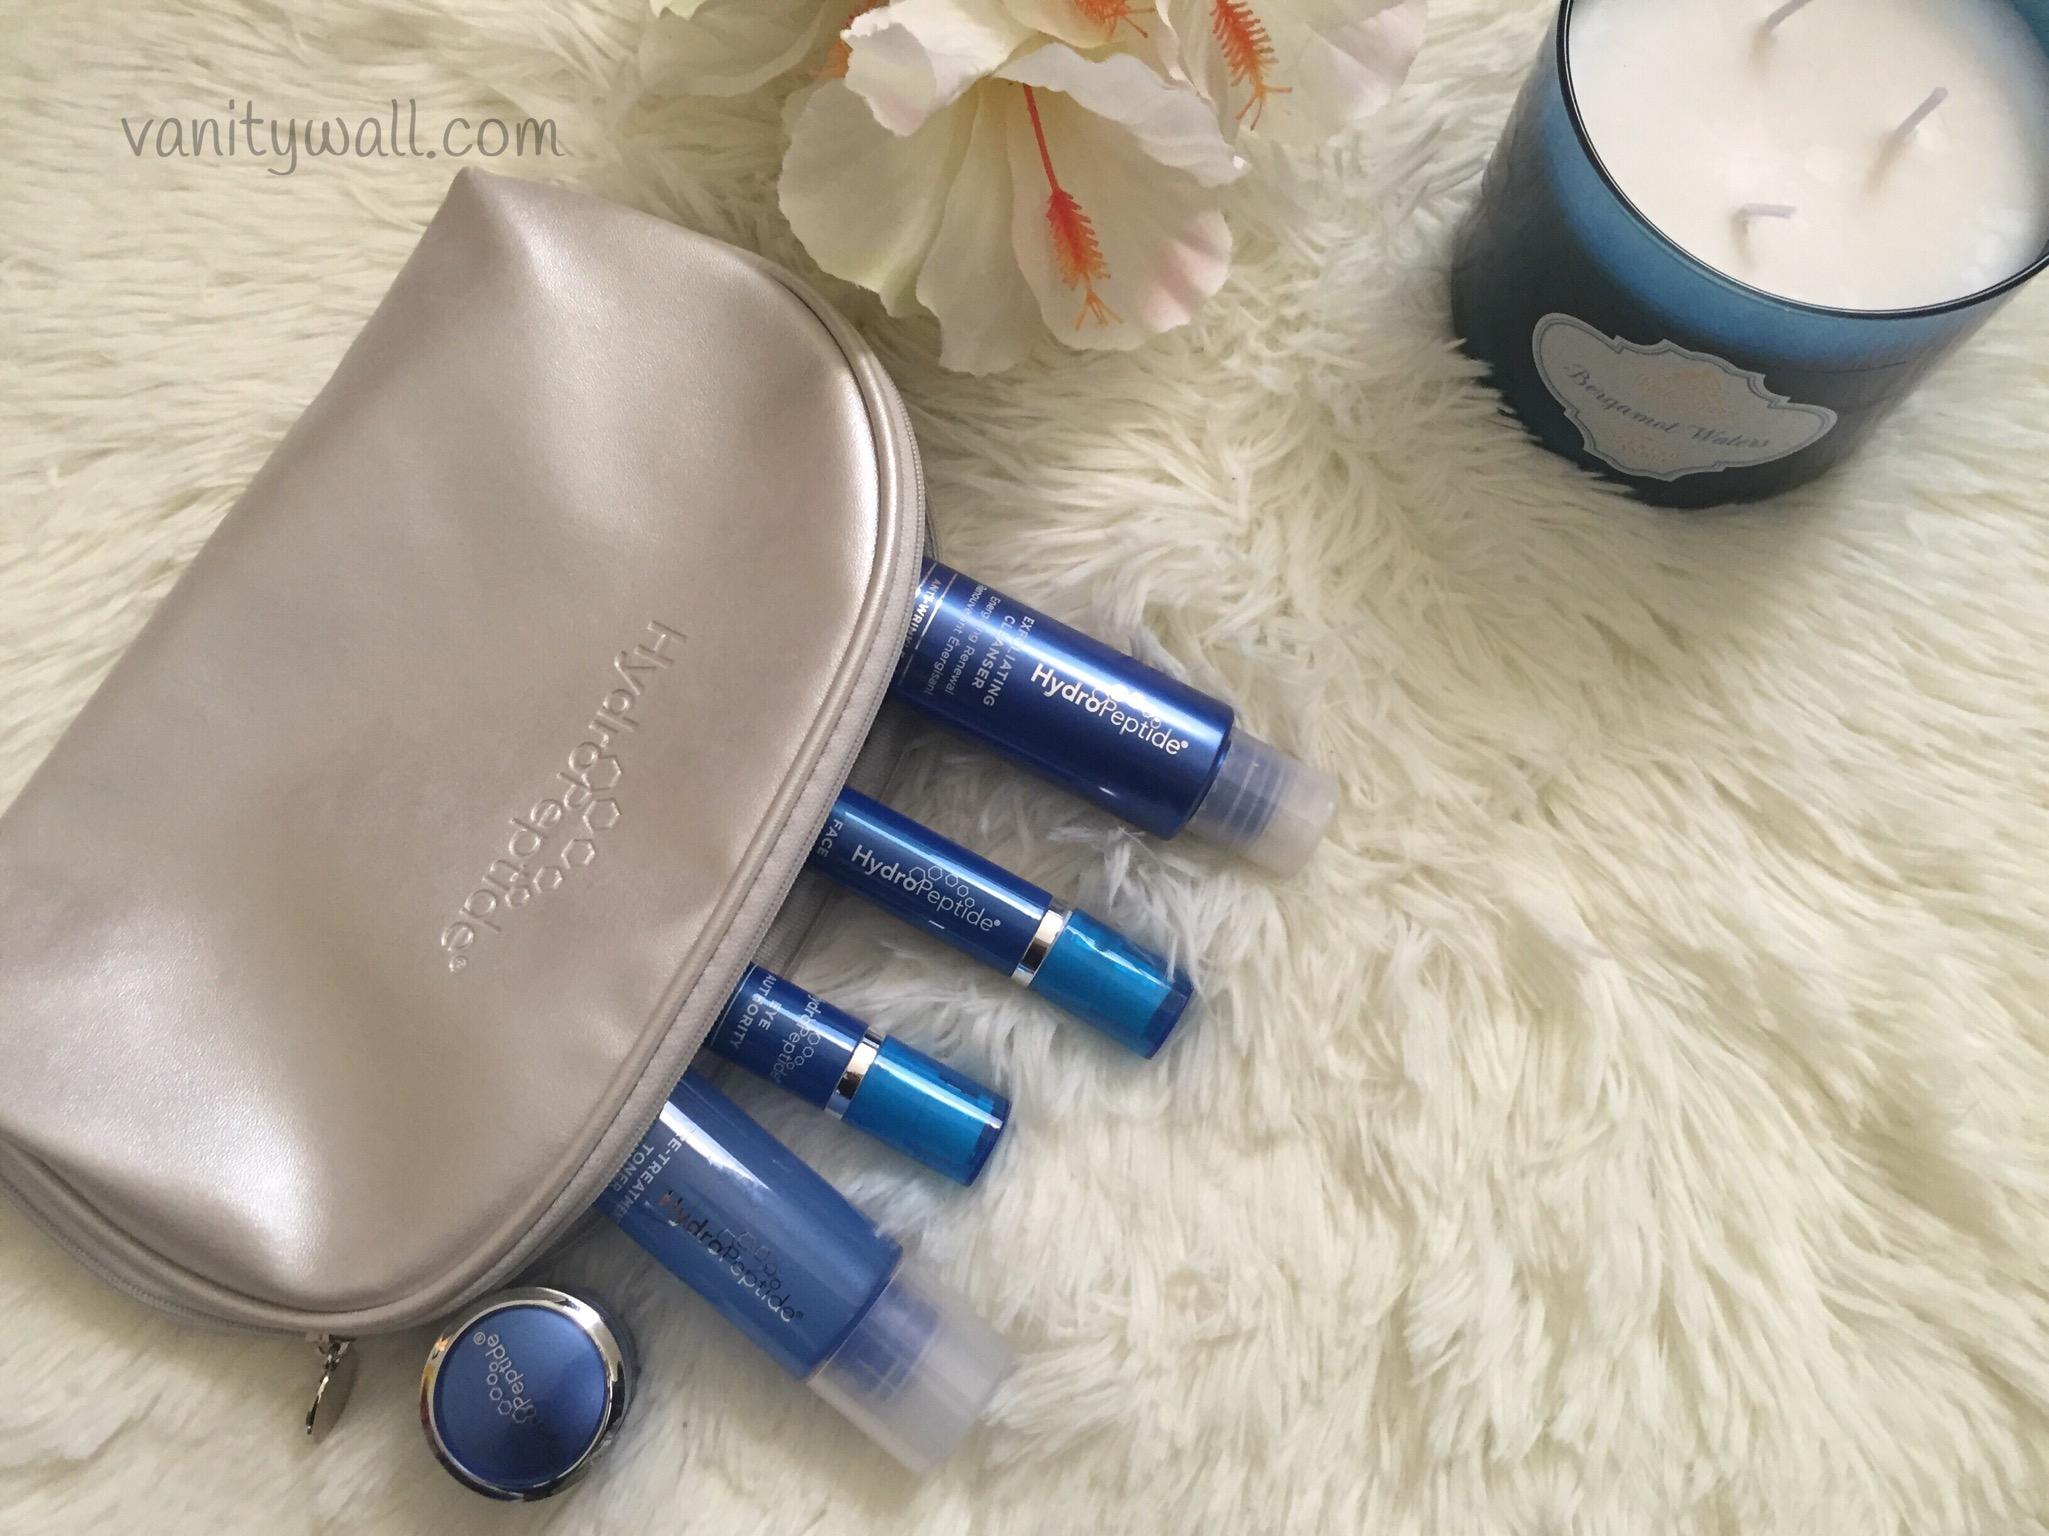 hydropeptide on the go glow travel set